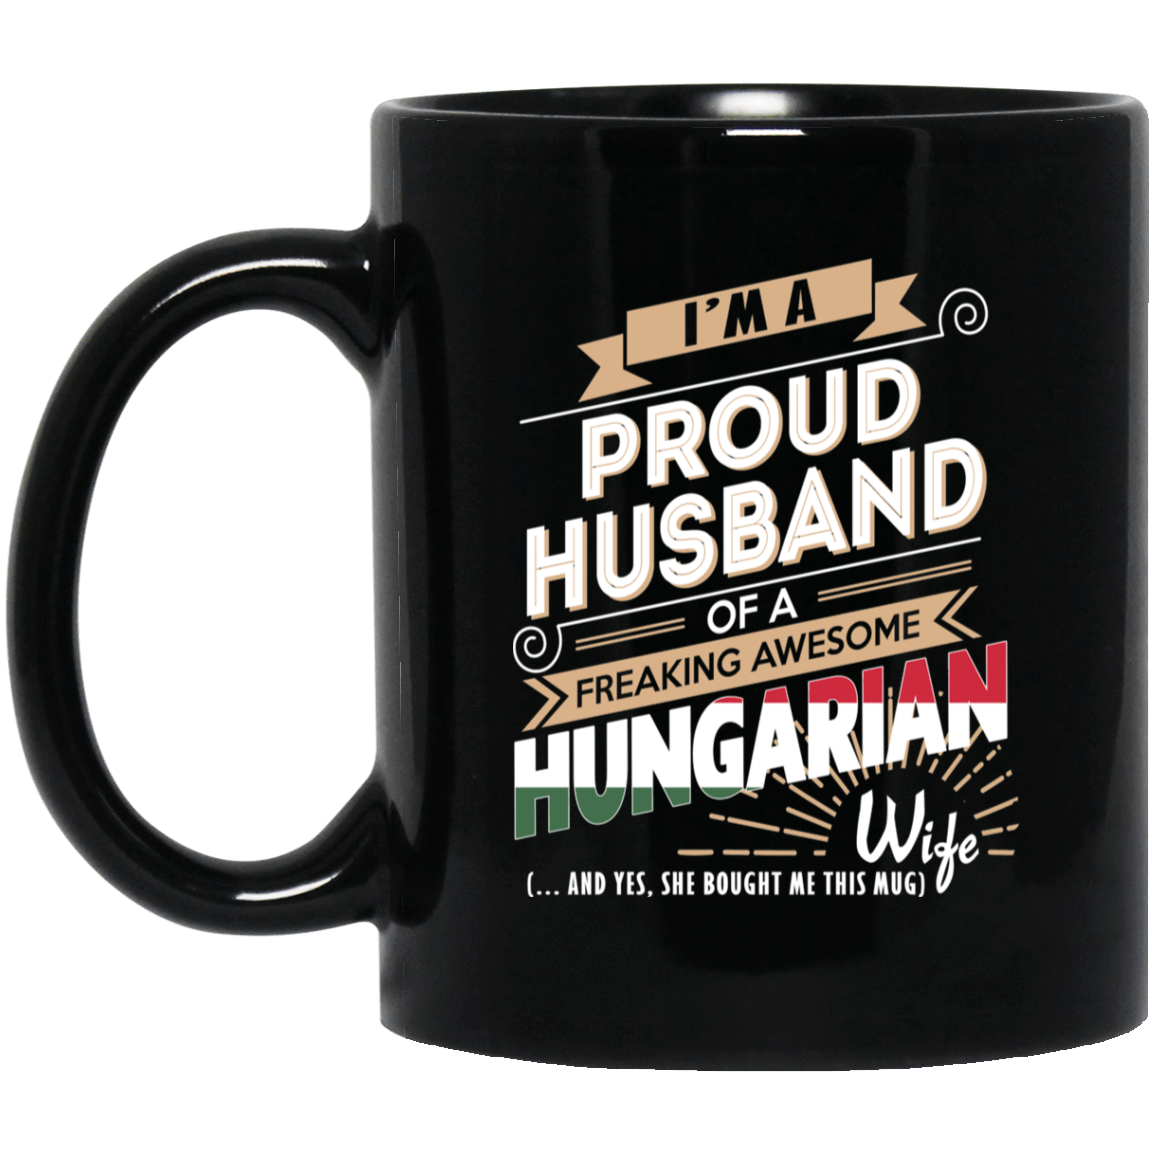 Proud Husband Of A Freaking Awesome Hungarian Wife Mug 1065-10181-72136519-49307 - Tee Ript